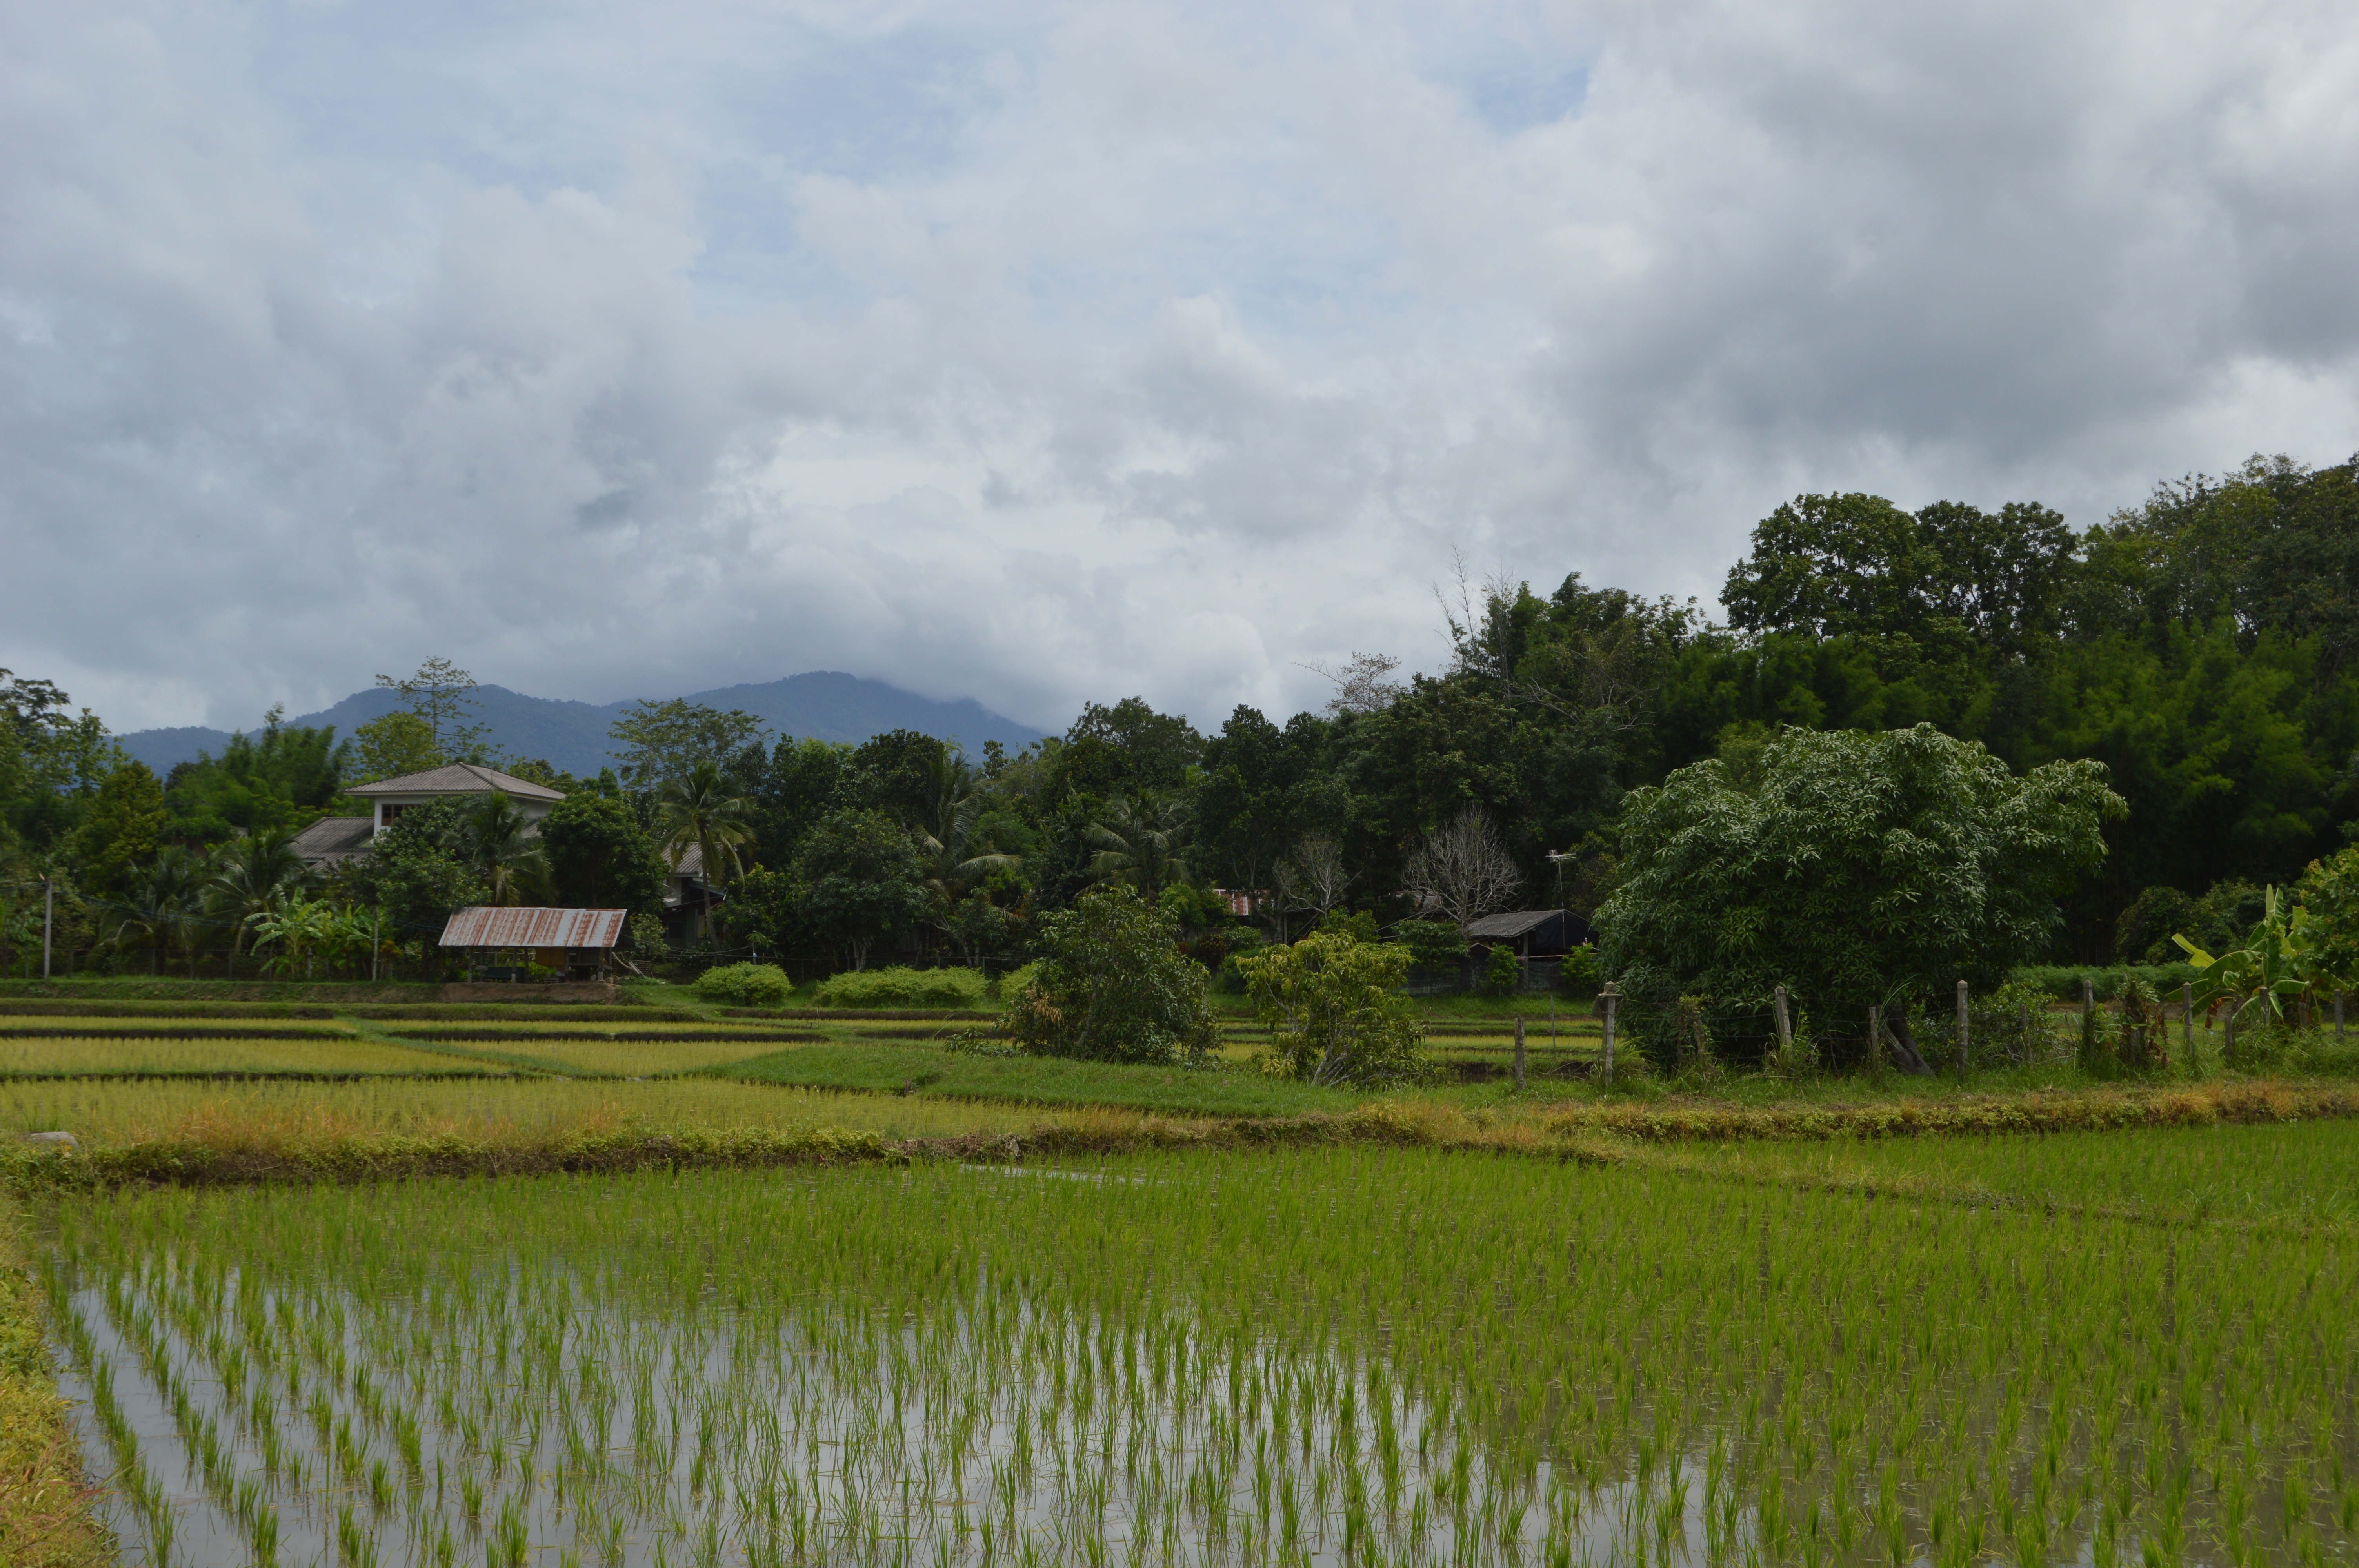 Freshly planted rice field